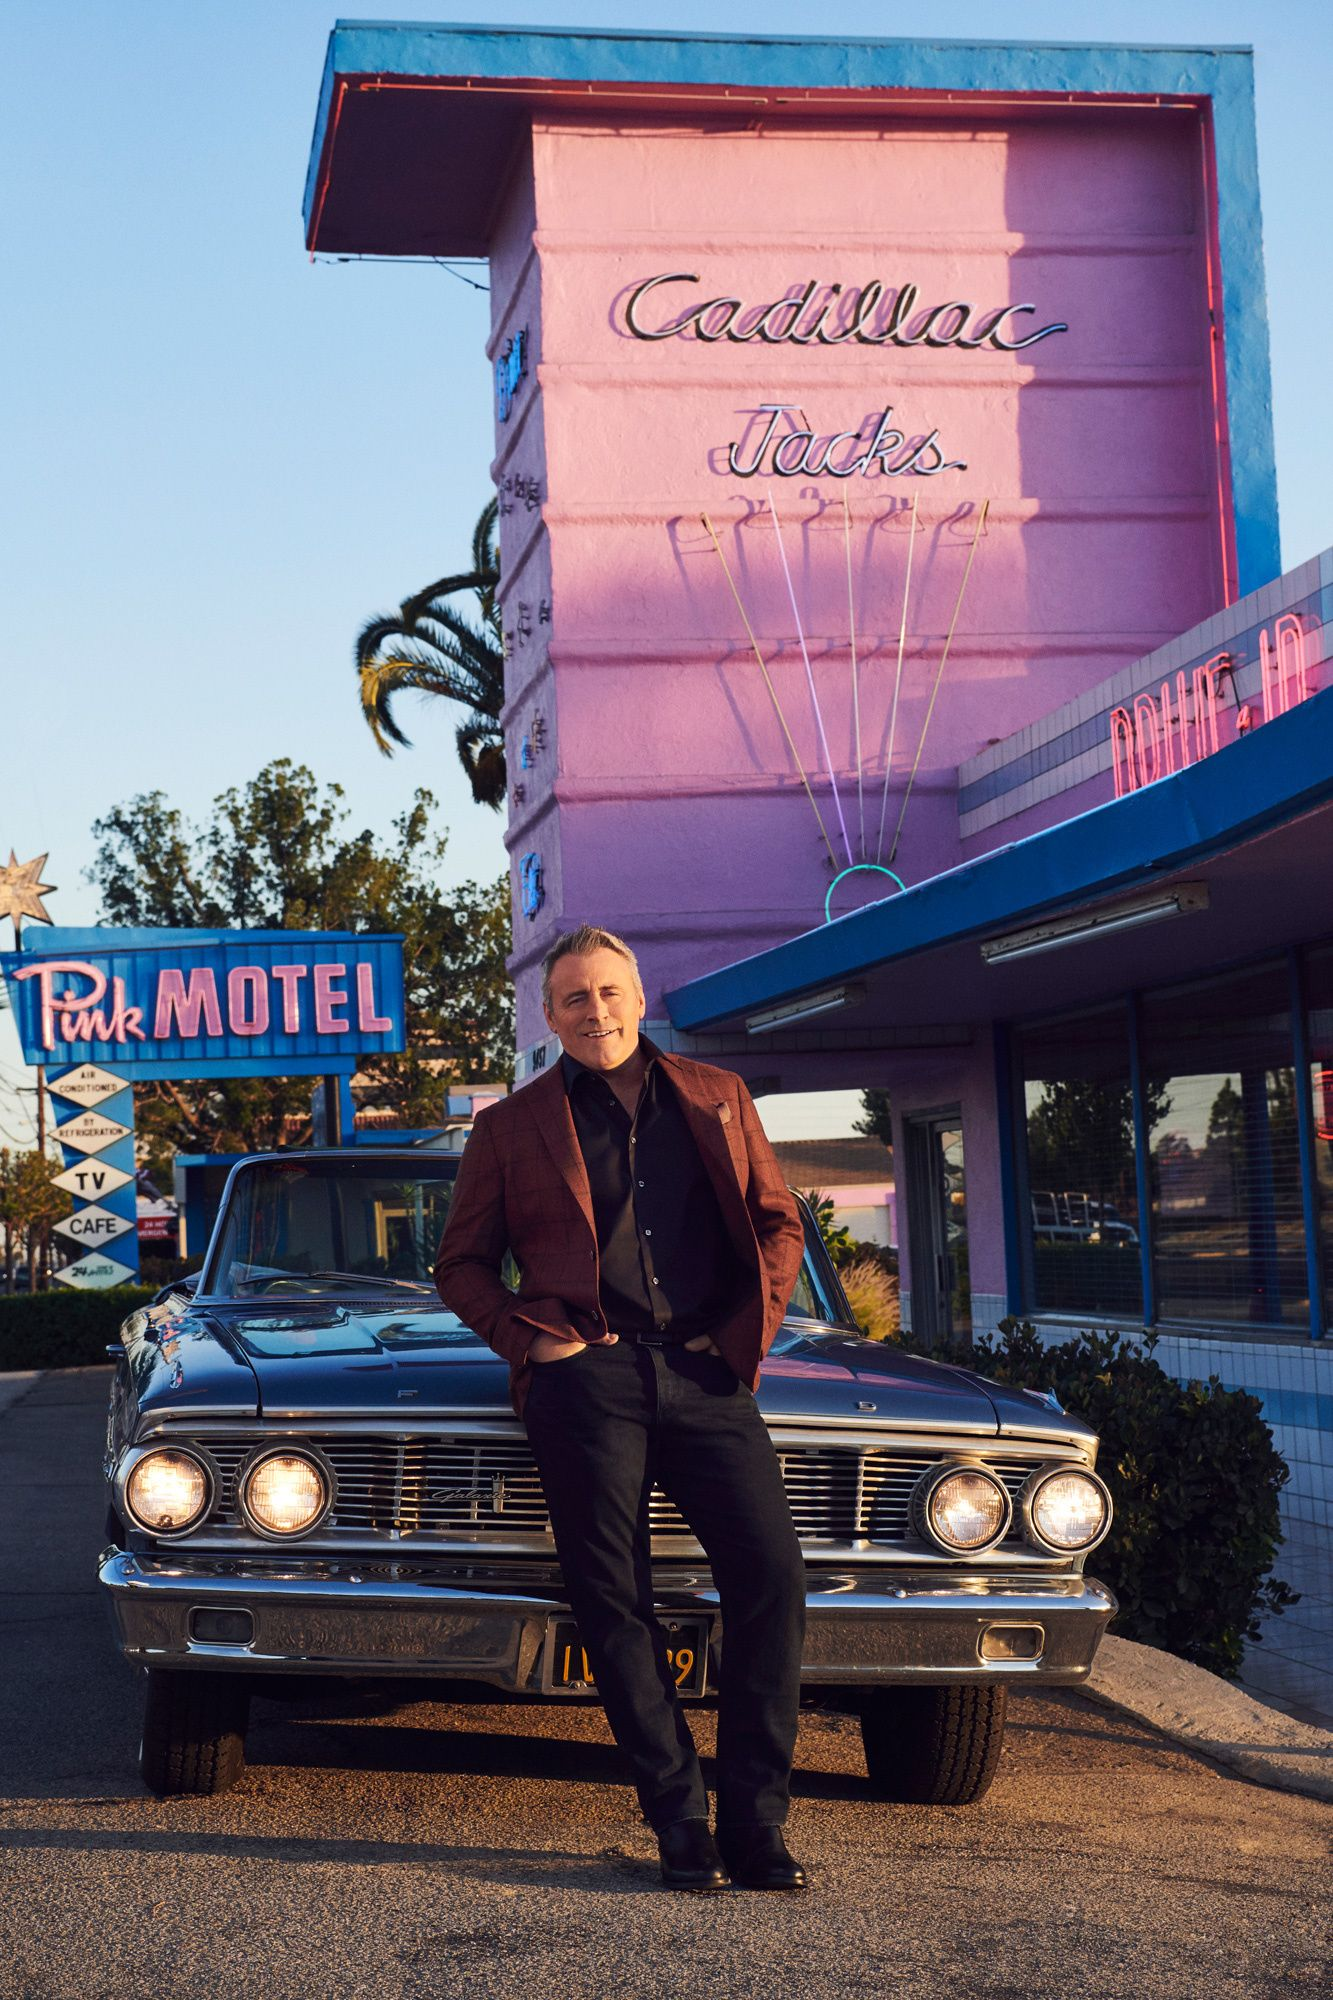 Matt LeBlanc leaning back against a vintage convertible in front of Pink Motel.